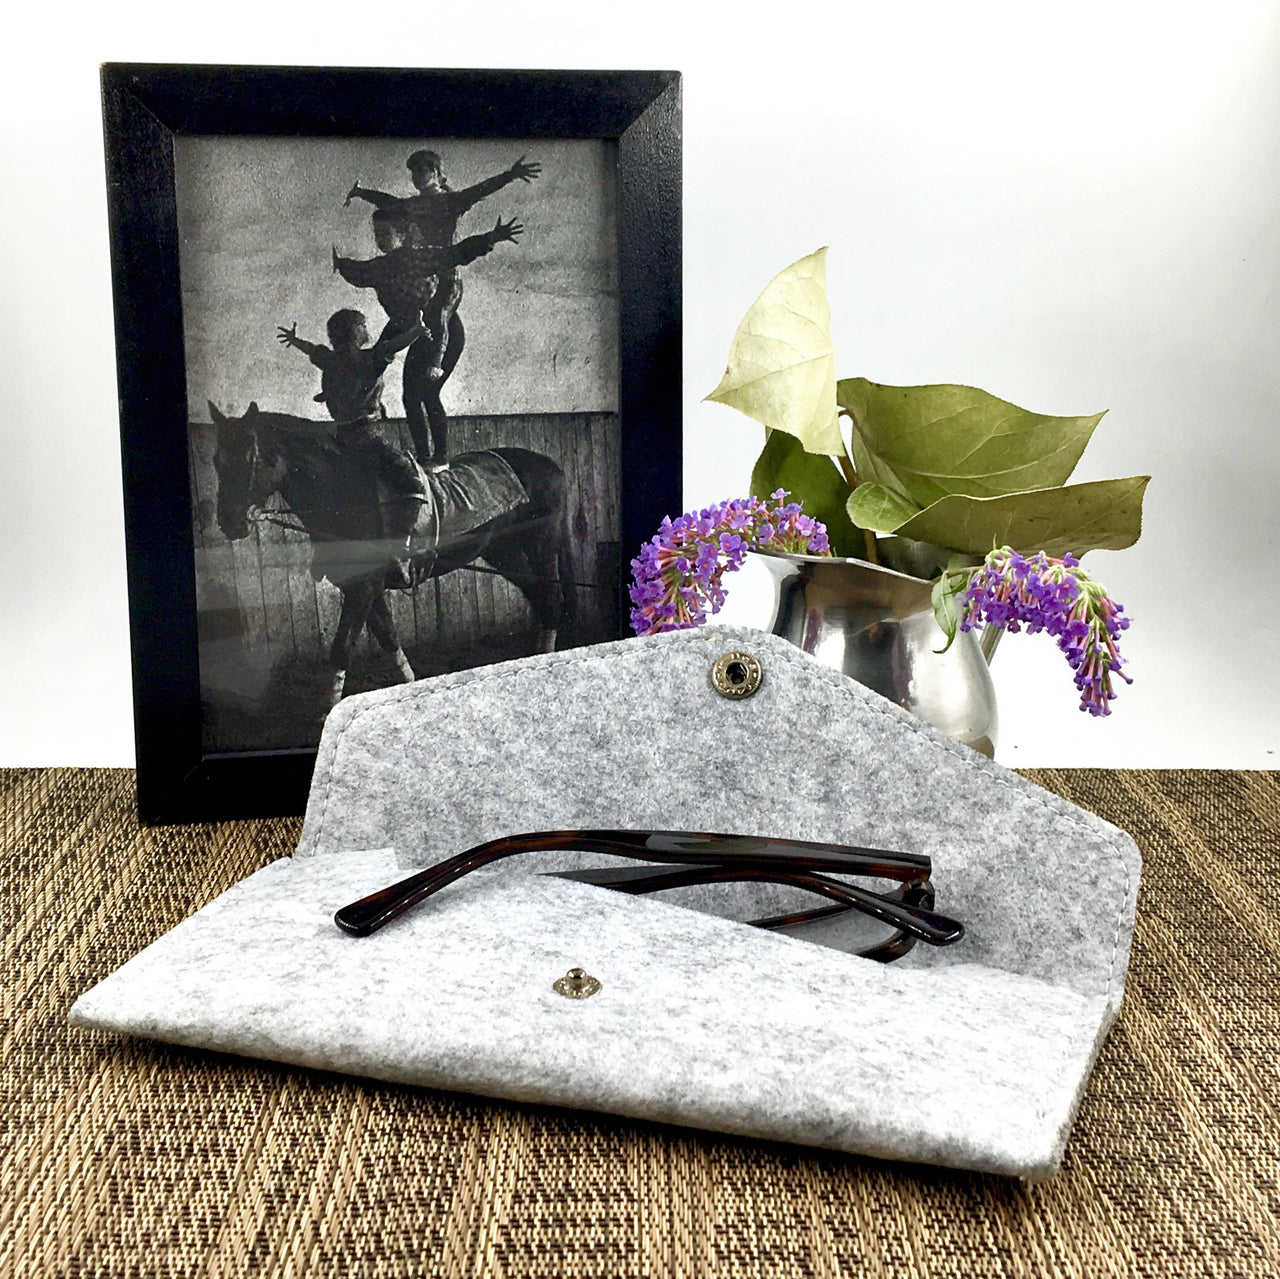 Felted Envelope shown used as eyeglass case